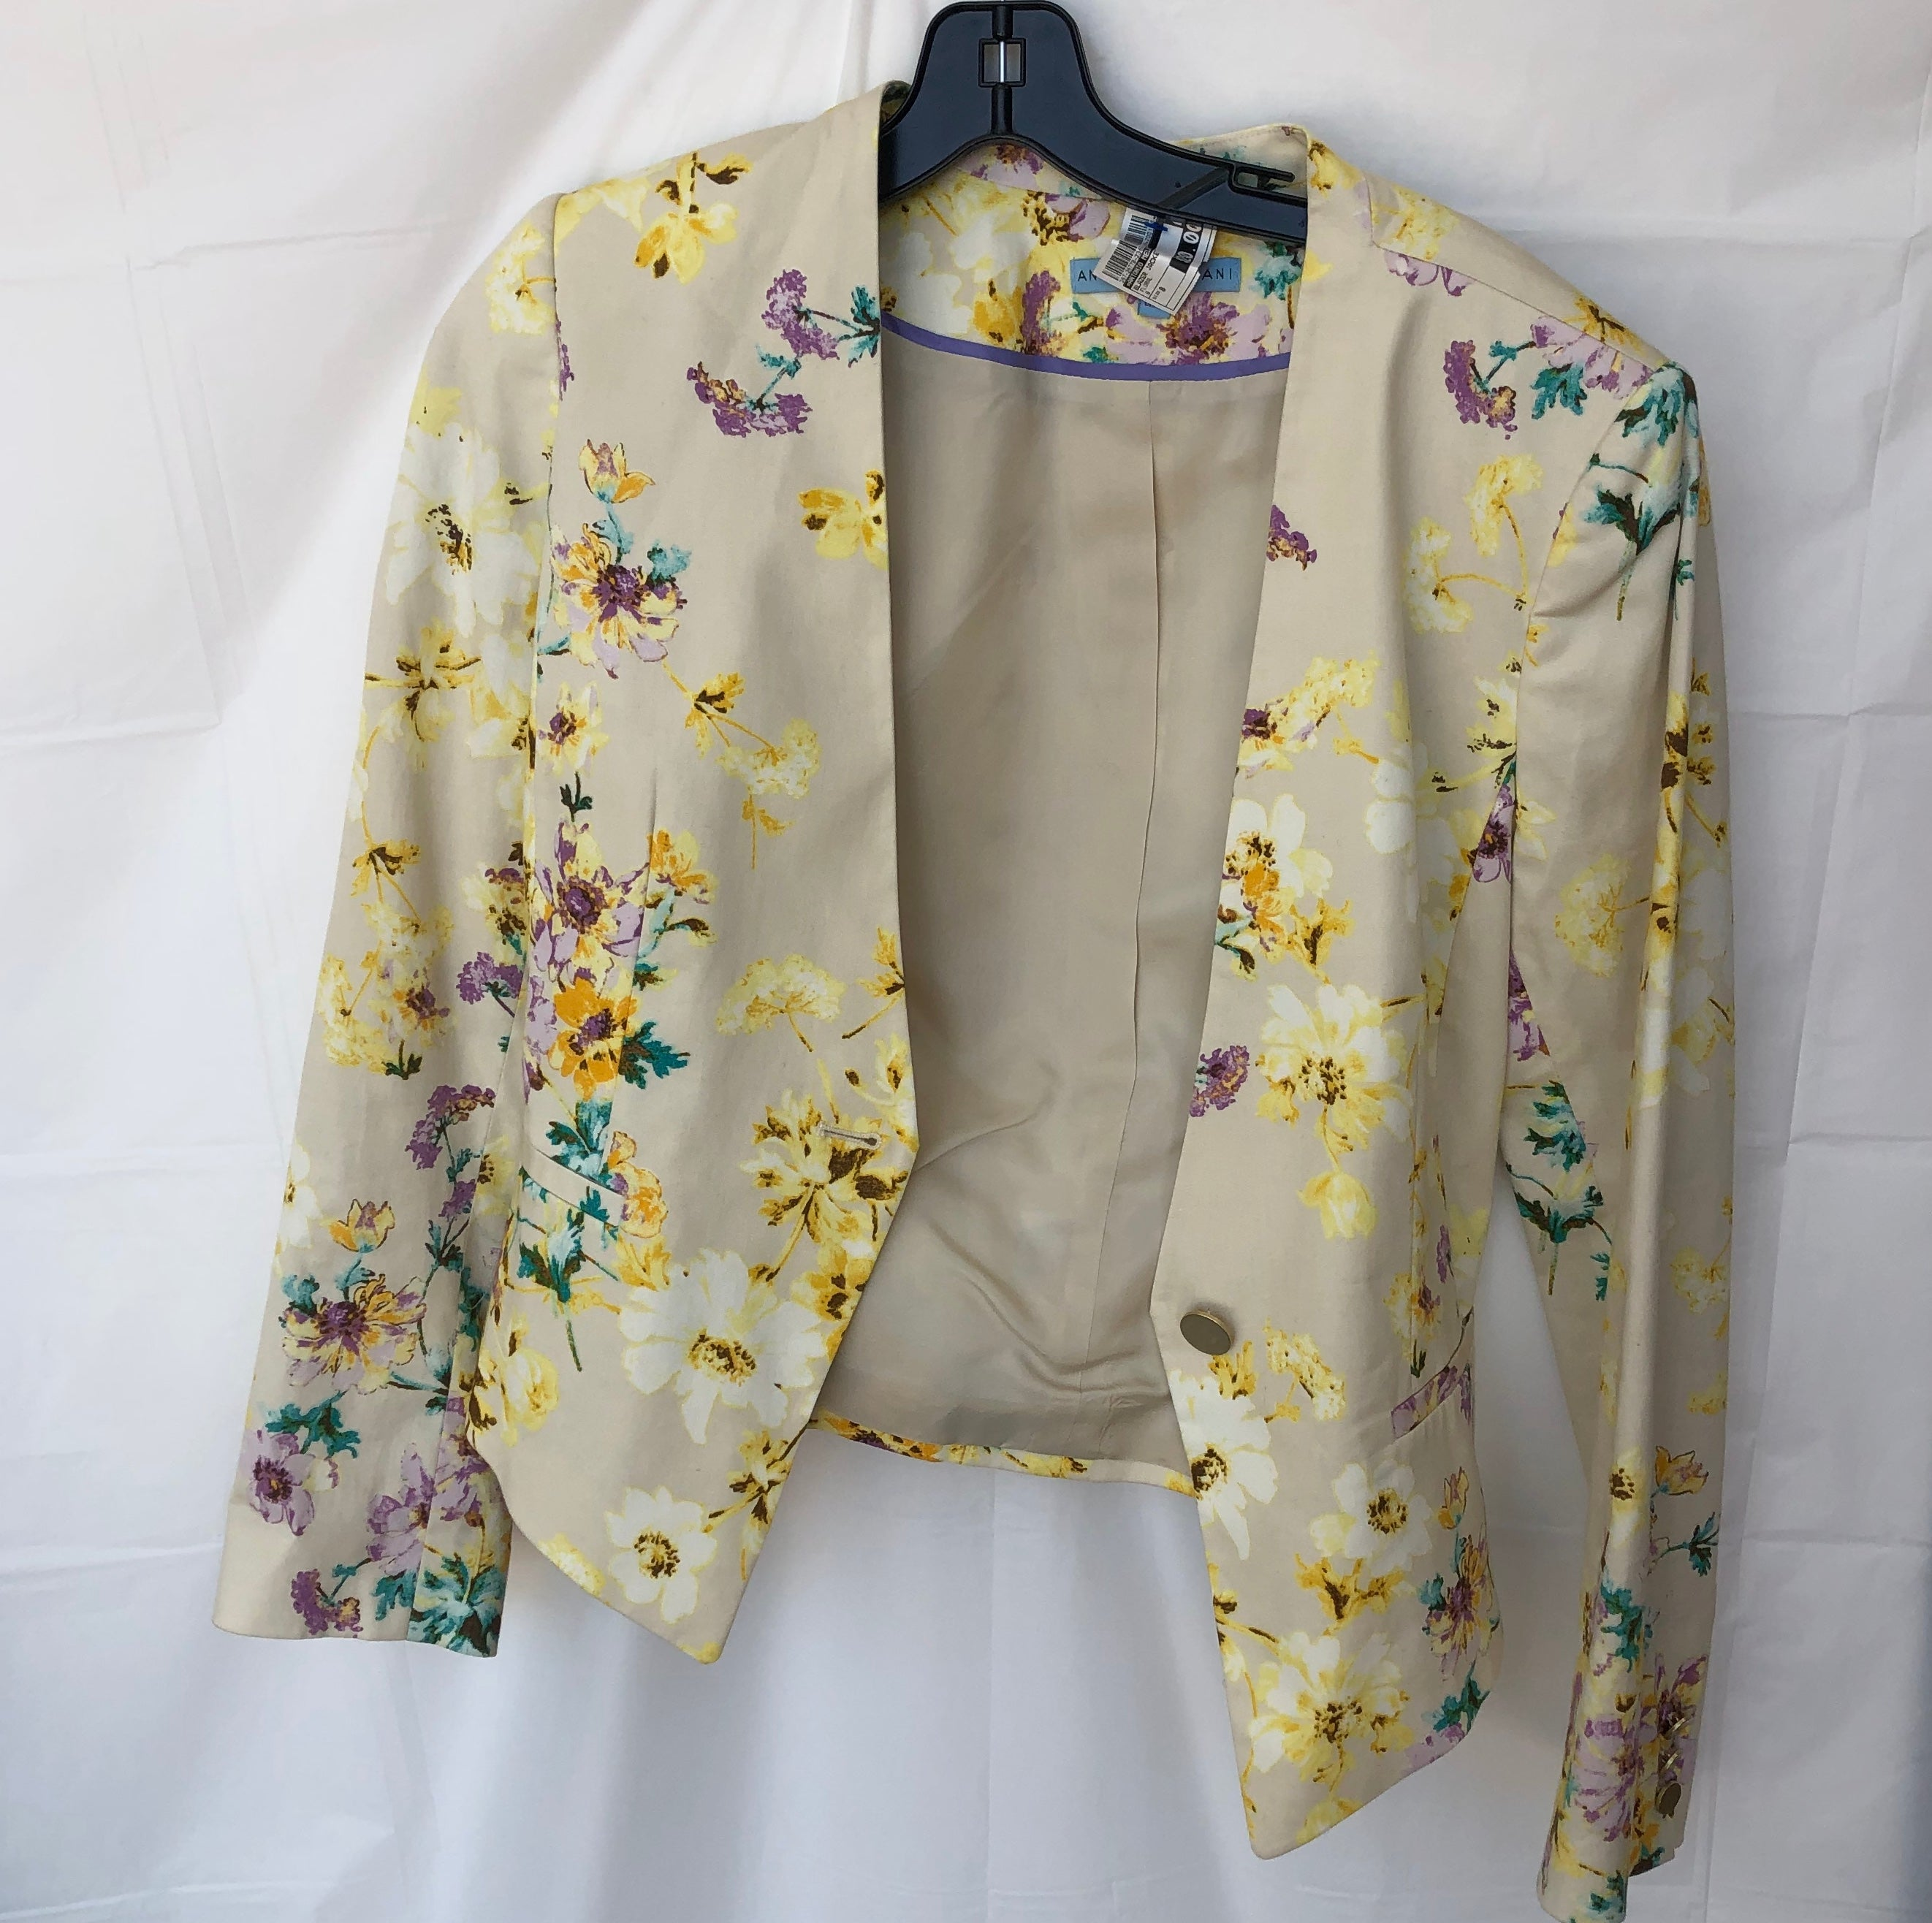 Primary Photo - brand: antonio melani, style: blazer jacket, color: floral, size: 8, sku: 267-26778-2369